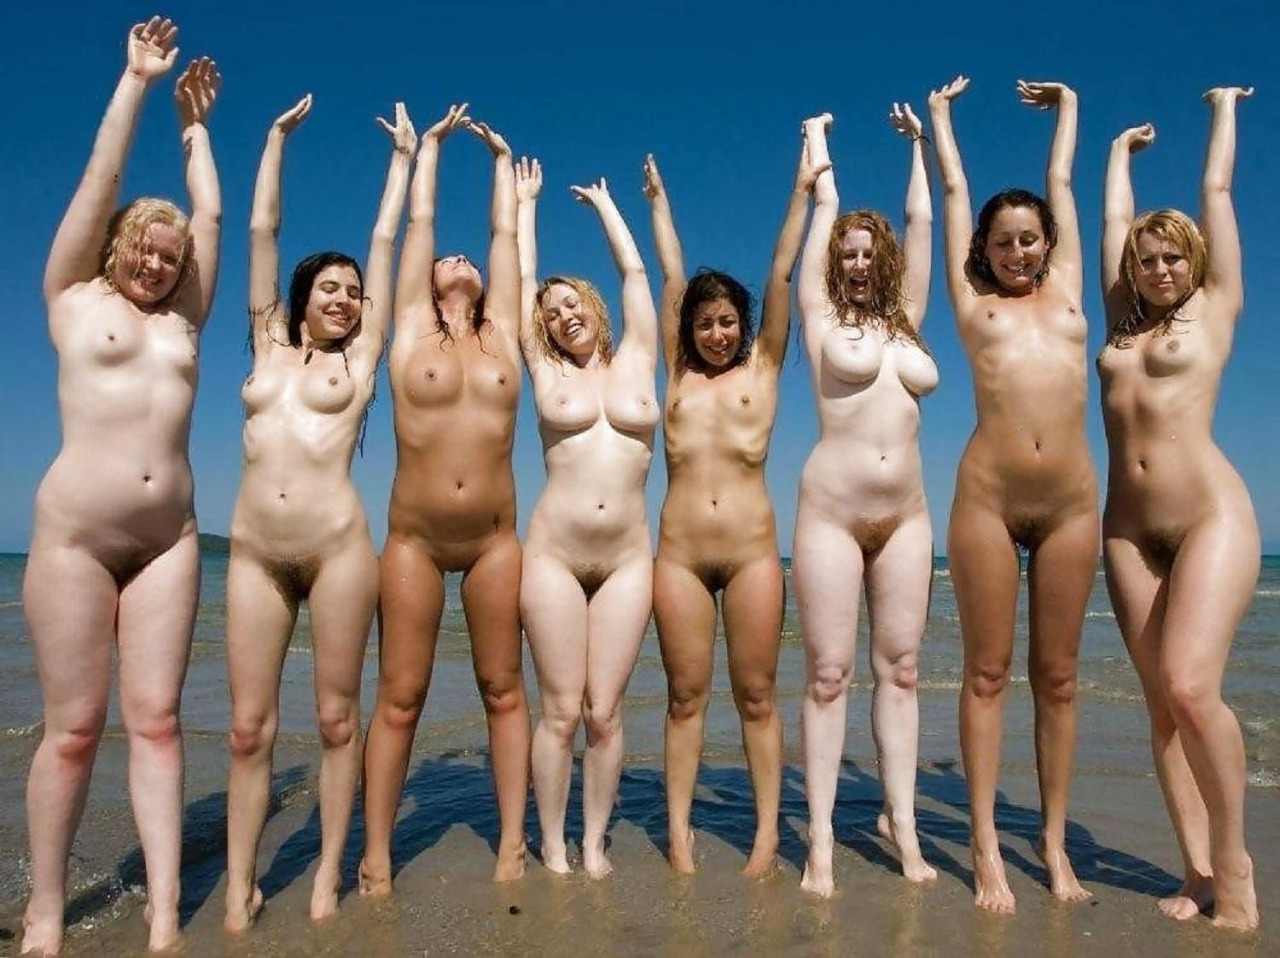 In Australia women's beauty standards are tanned, athletic figure (some curves but not too much blonde hair/blue eyes.